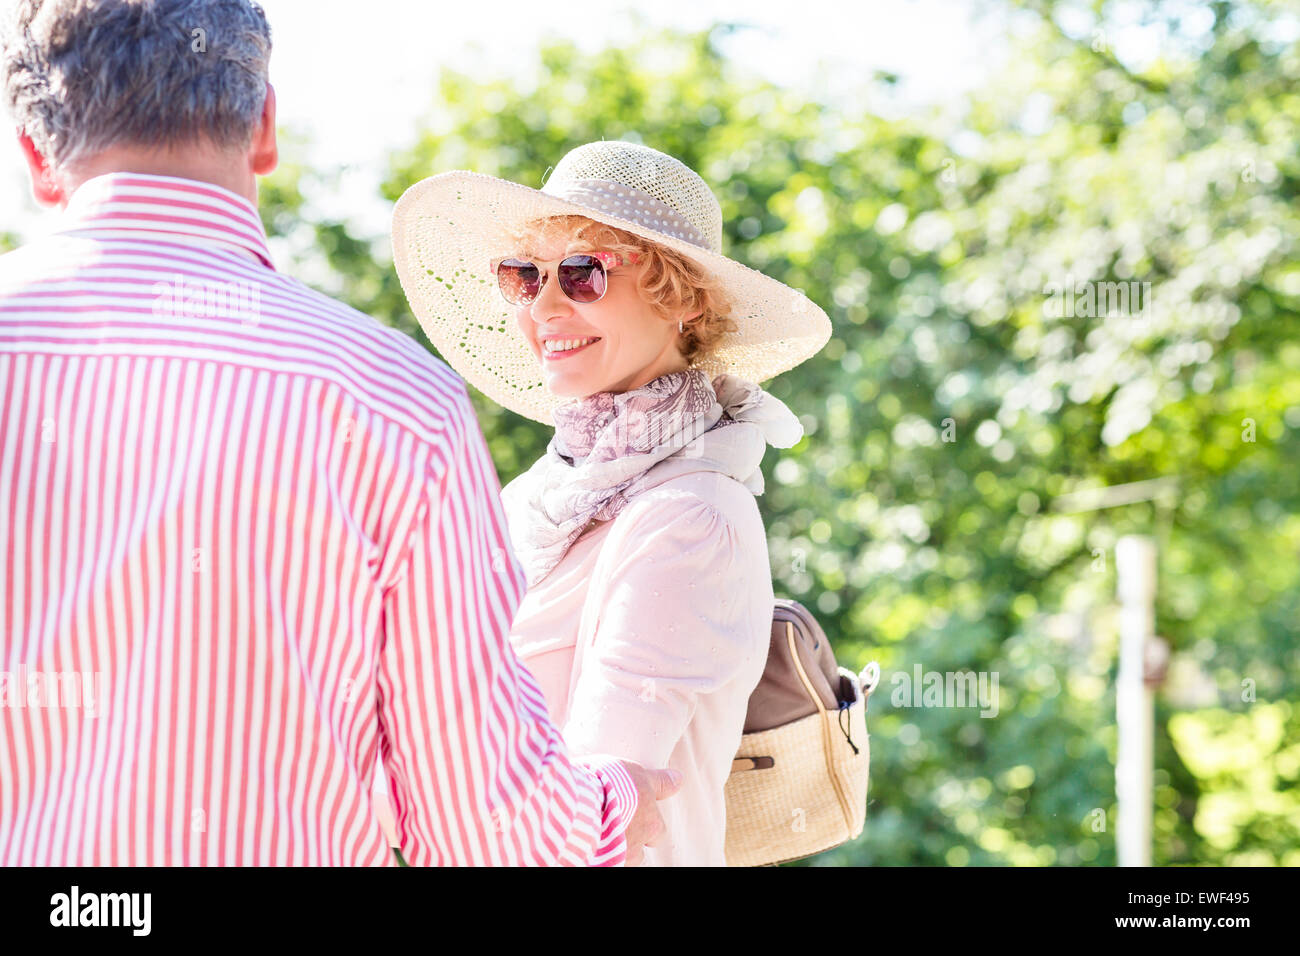 Happy middle-aged woman with man in park Photo Stock